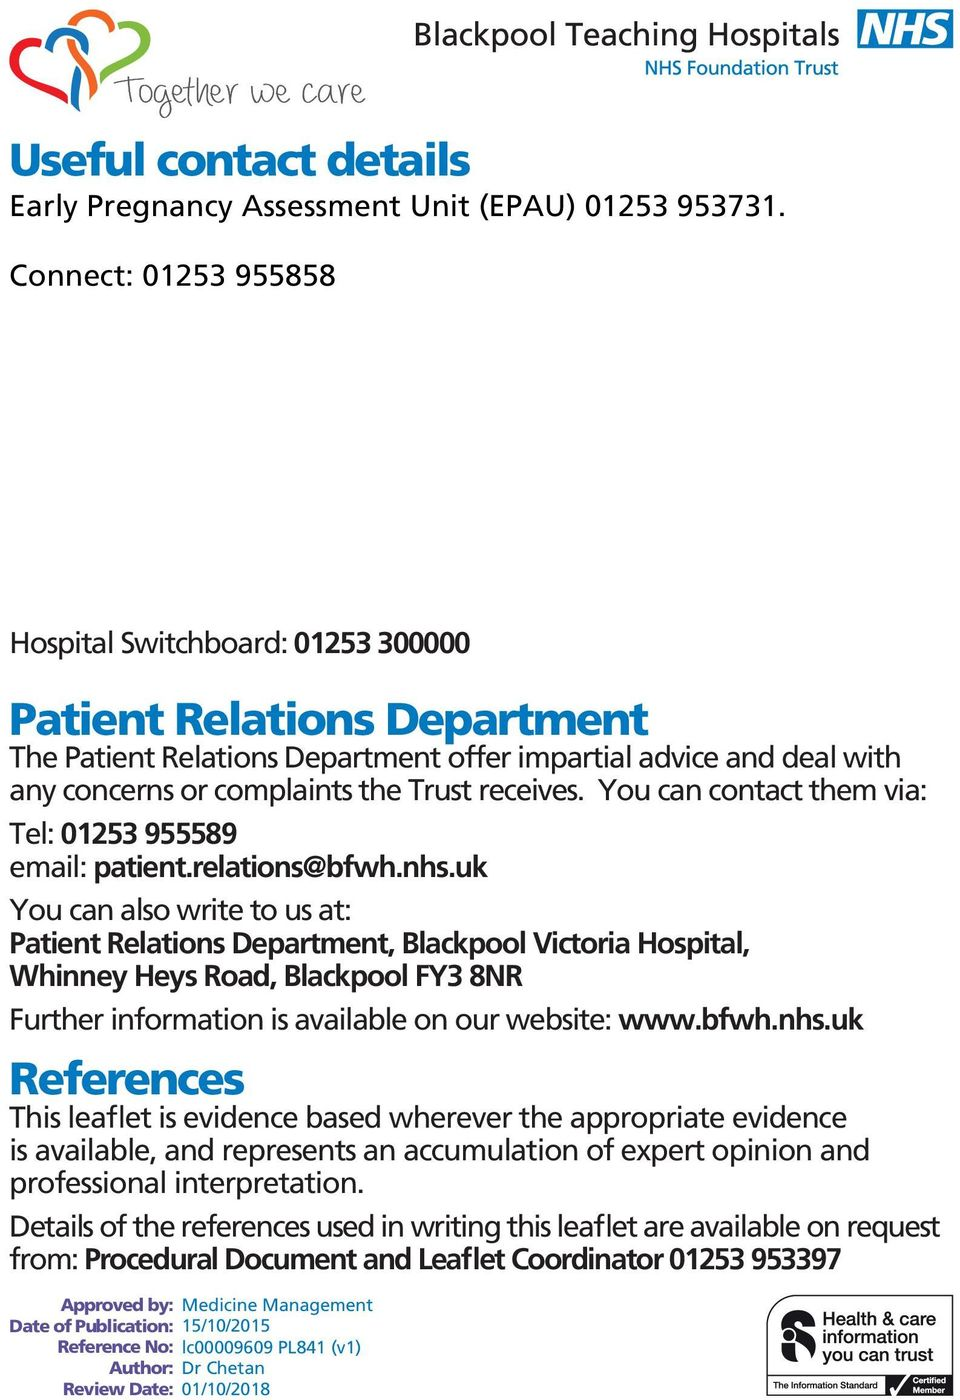 receives. You can contact them via: Tel: 01253 955589 email: patient.relations@bfwh.nhs.